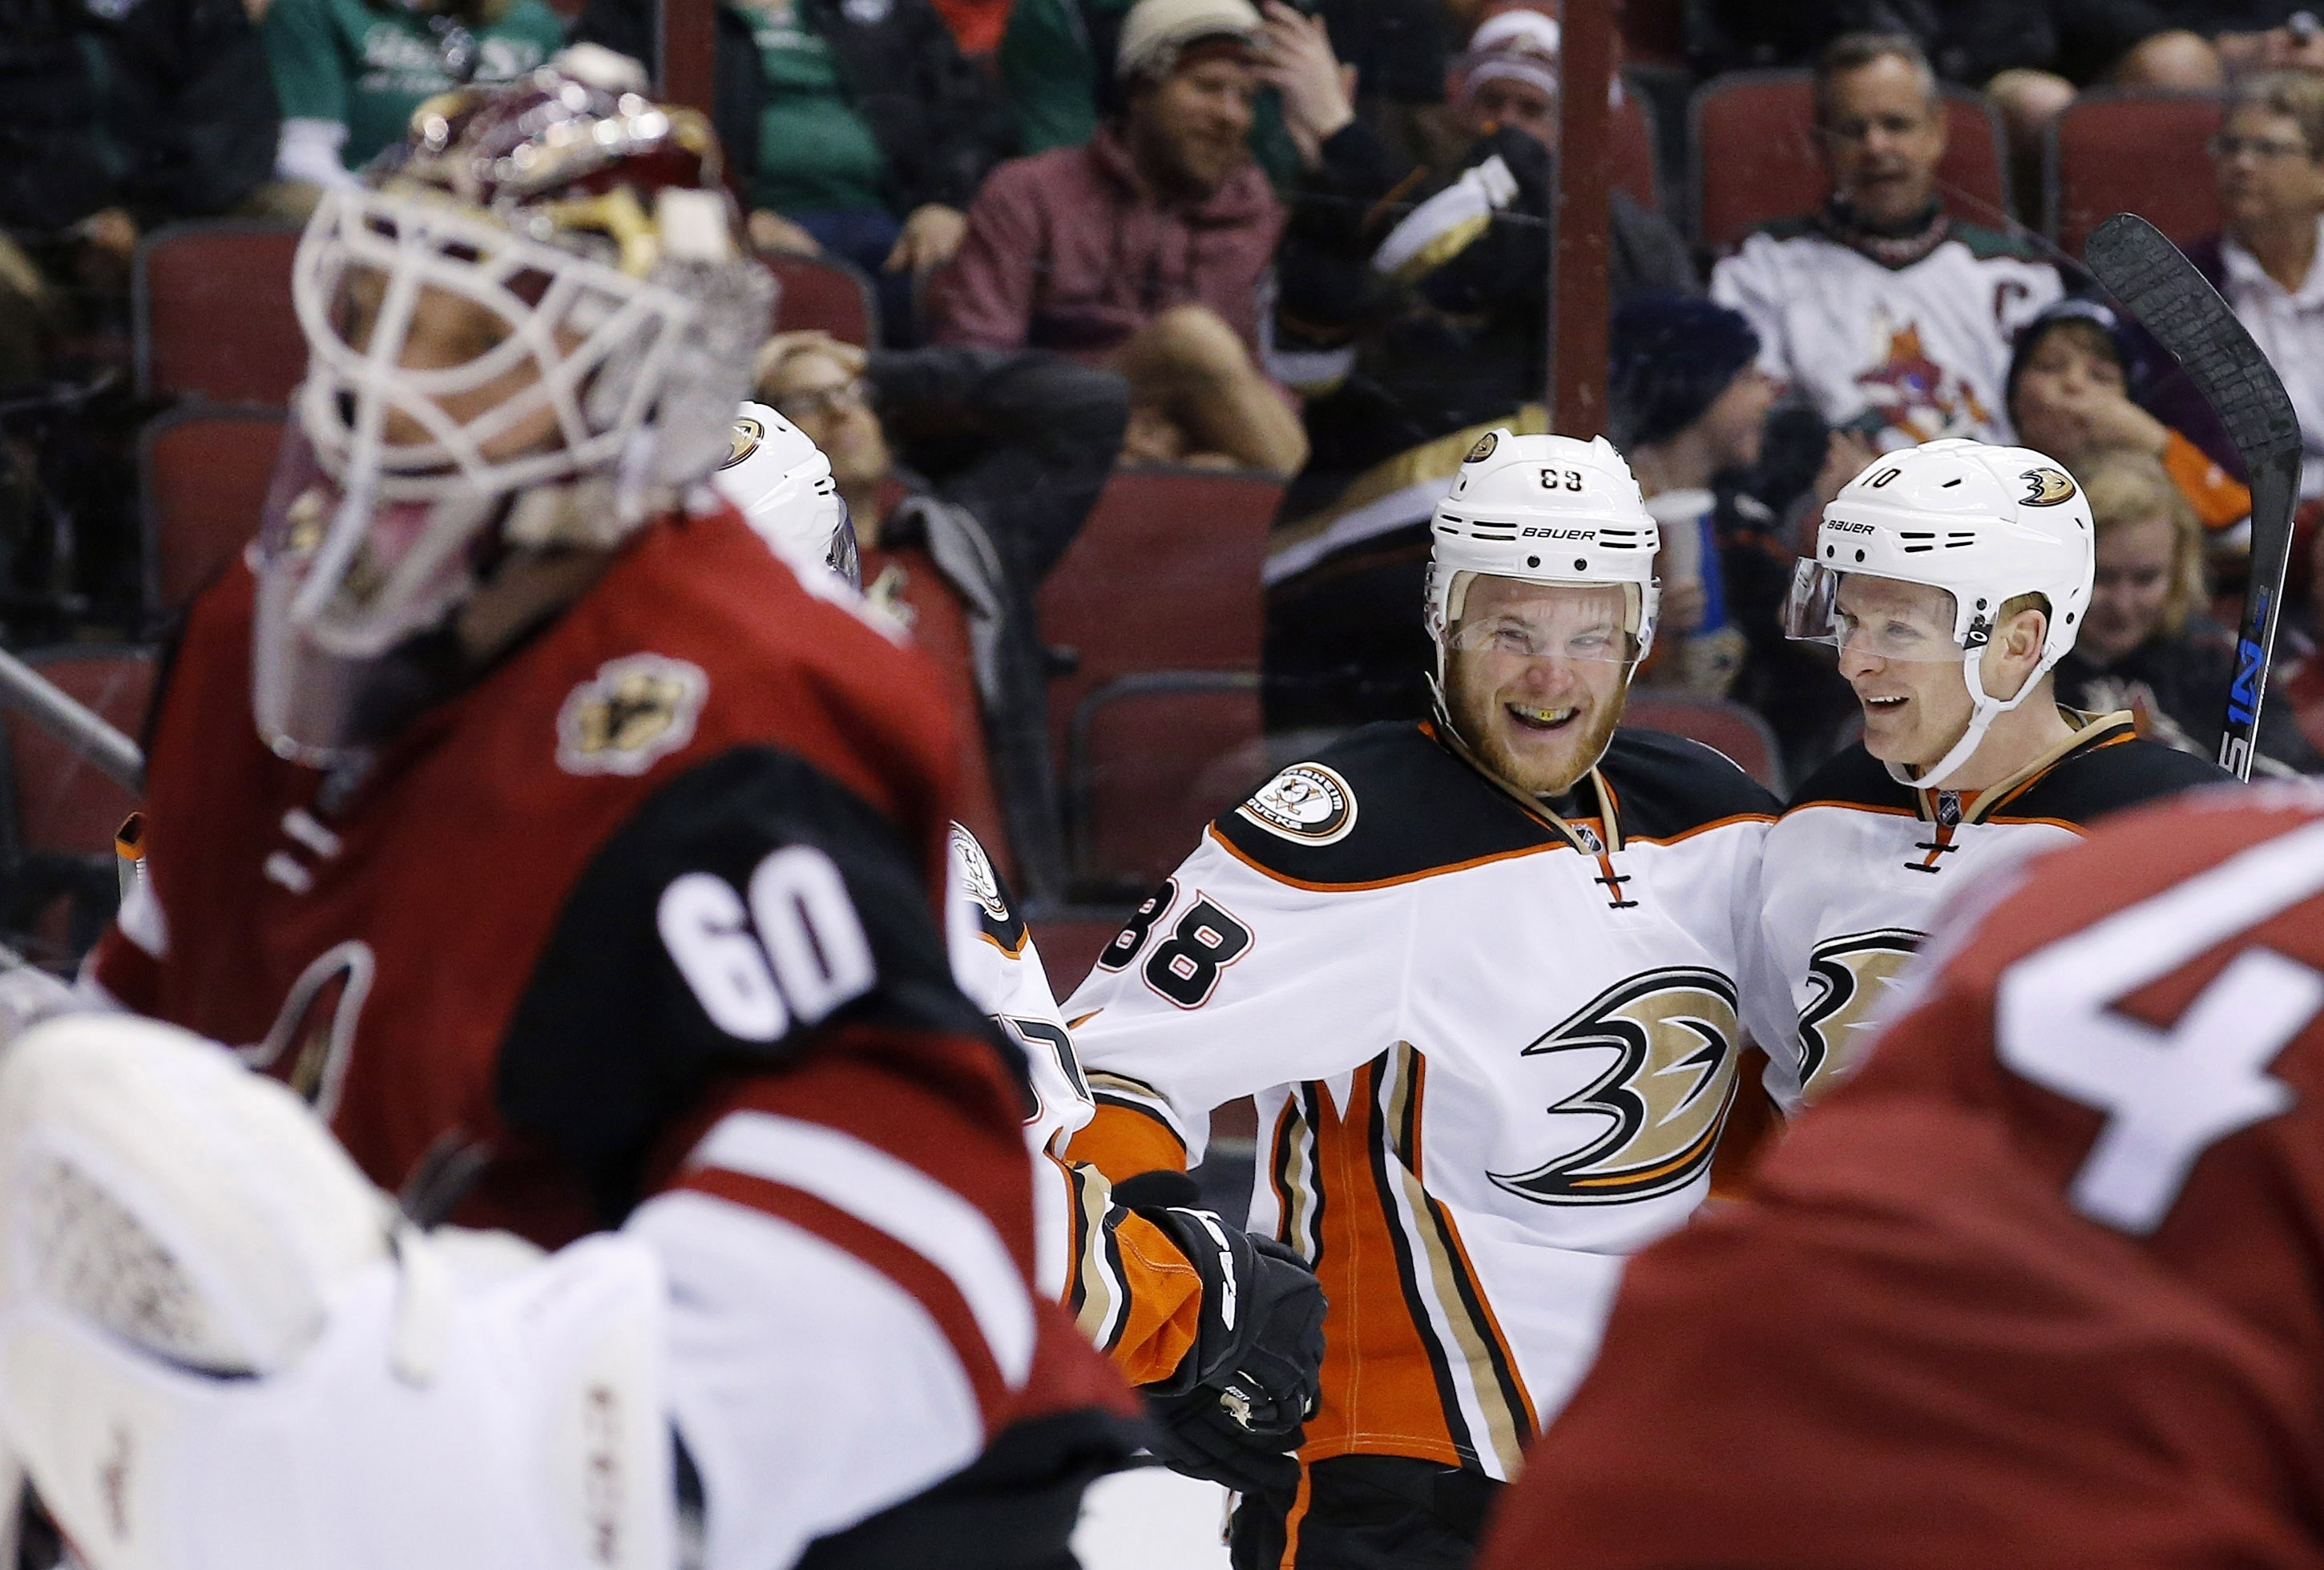 Anaheim Ducks' Jamie McGinn (88) smiles as he celebrates his goal against Arizona Coyotes' Niklas Treutle (60), of Germany, with teammate Corey Perry (10) during the first period of an NHL hockey game Thursday, March 3, 2016, in Glendale, Ariz. (AP Photo/